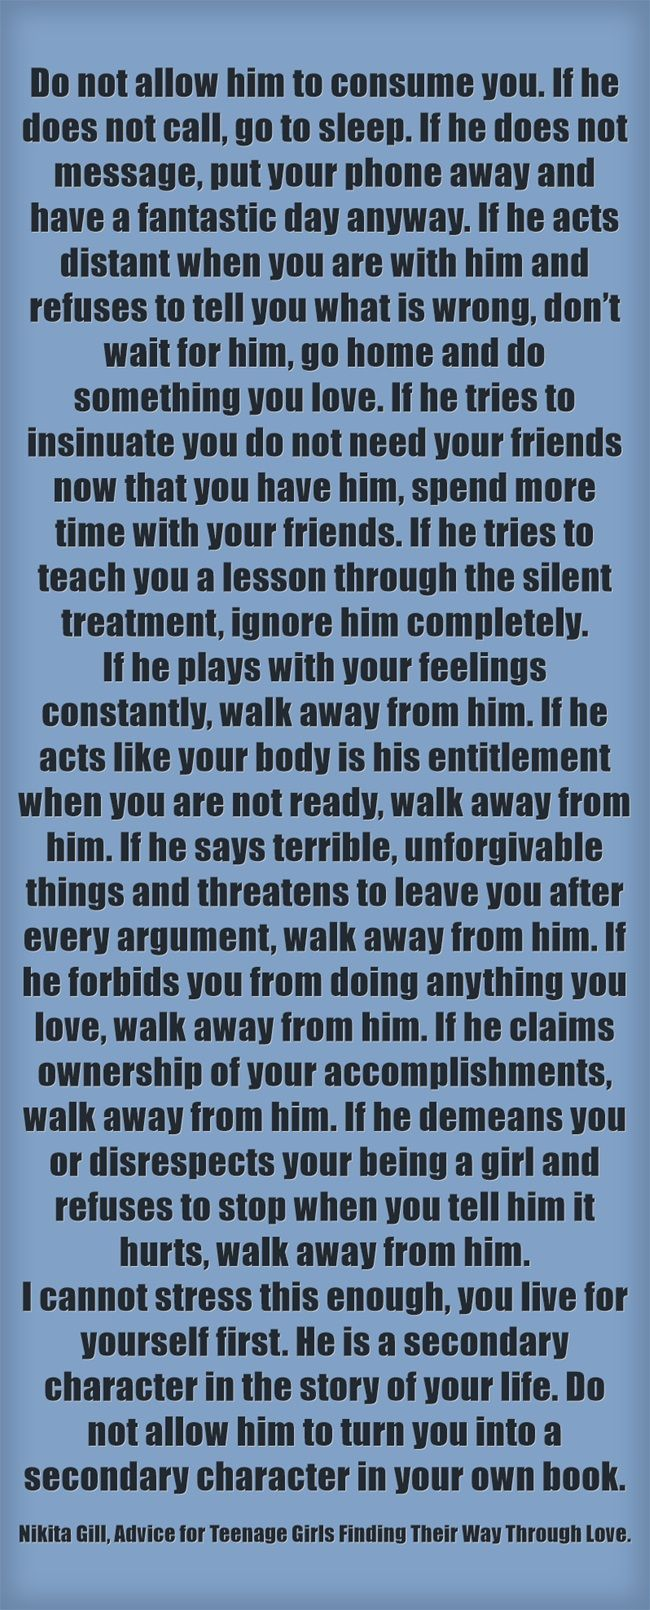 dating after divorcing a narcissist Narcissism understood or have arrived for 'other' reasons such as alcoholism or a divorce all young people should be educated before dating to become.